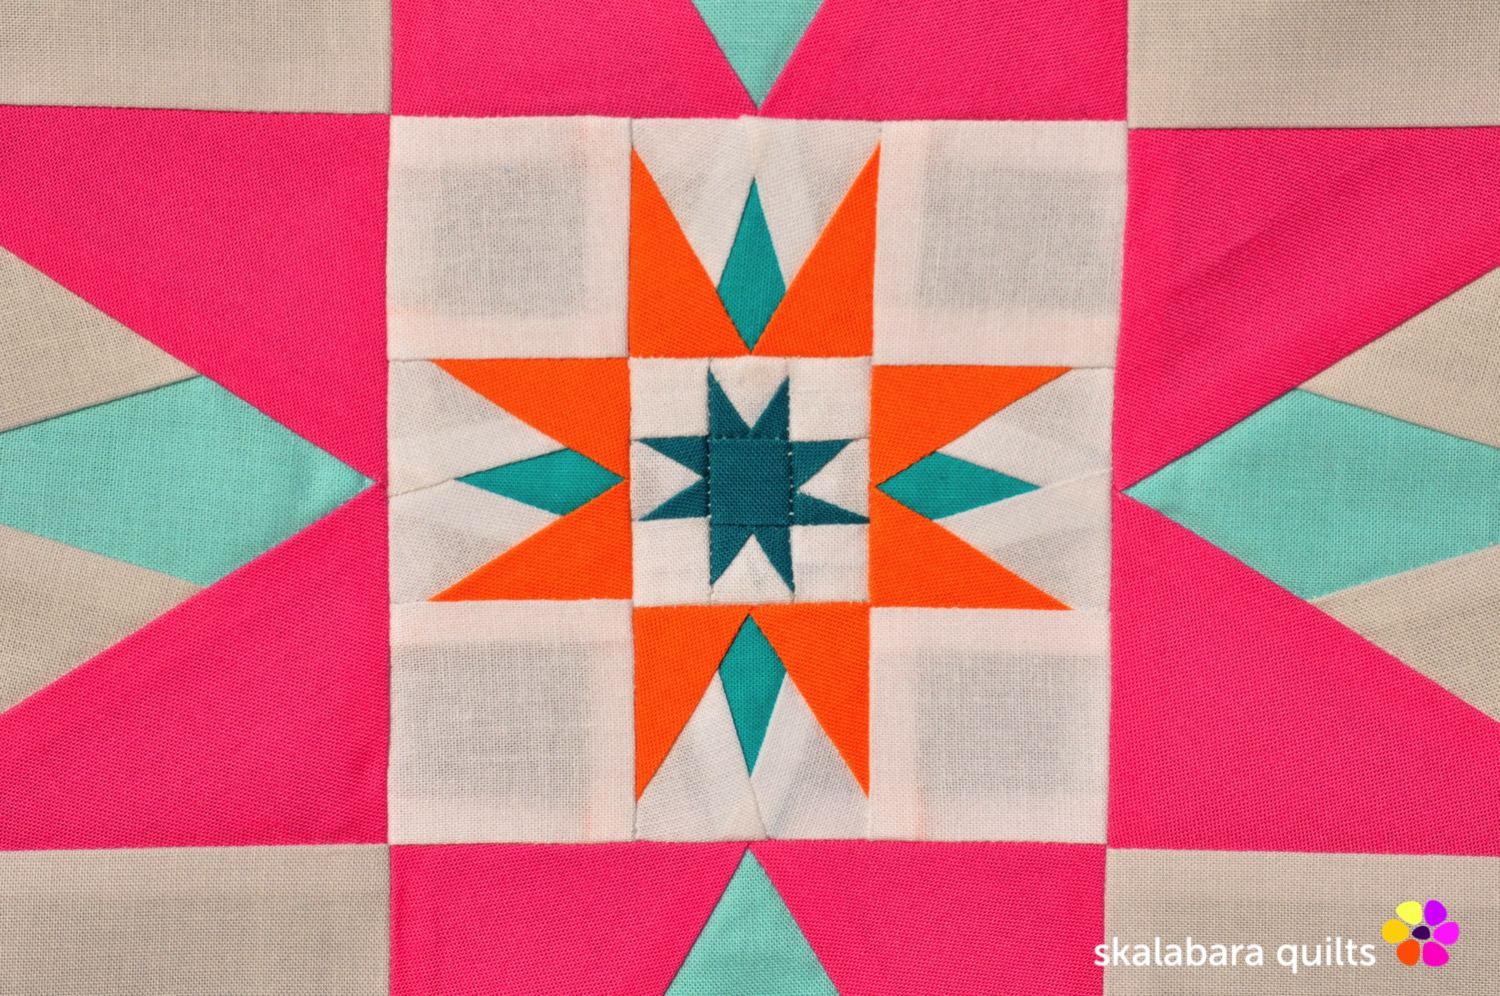 summer sampler 2019 block 8 detail - skalabara quilts